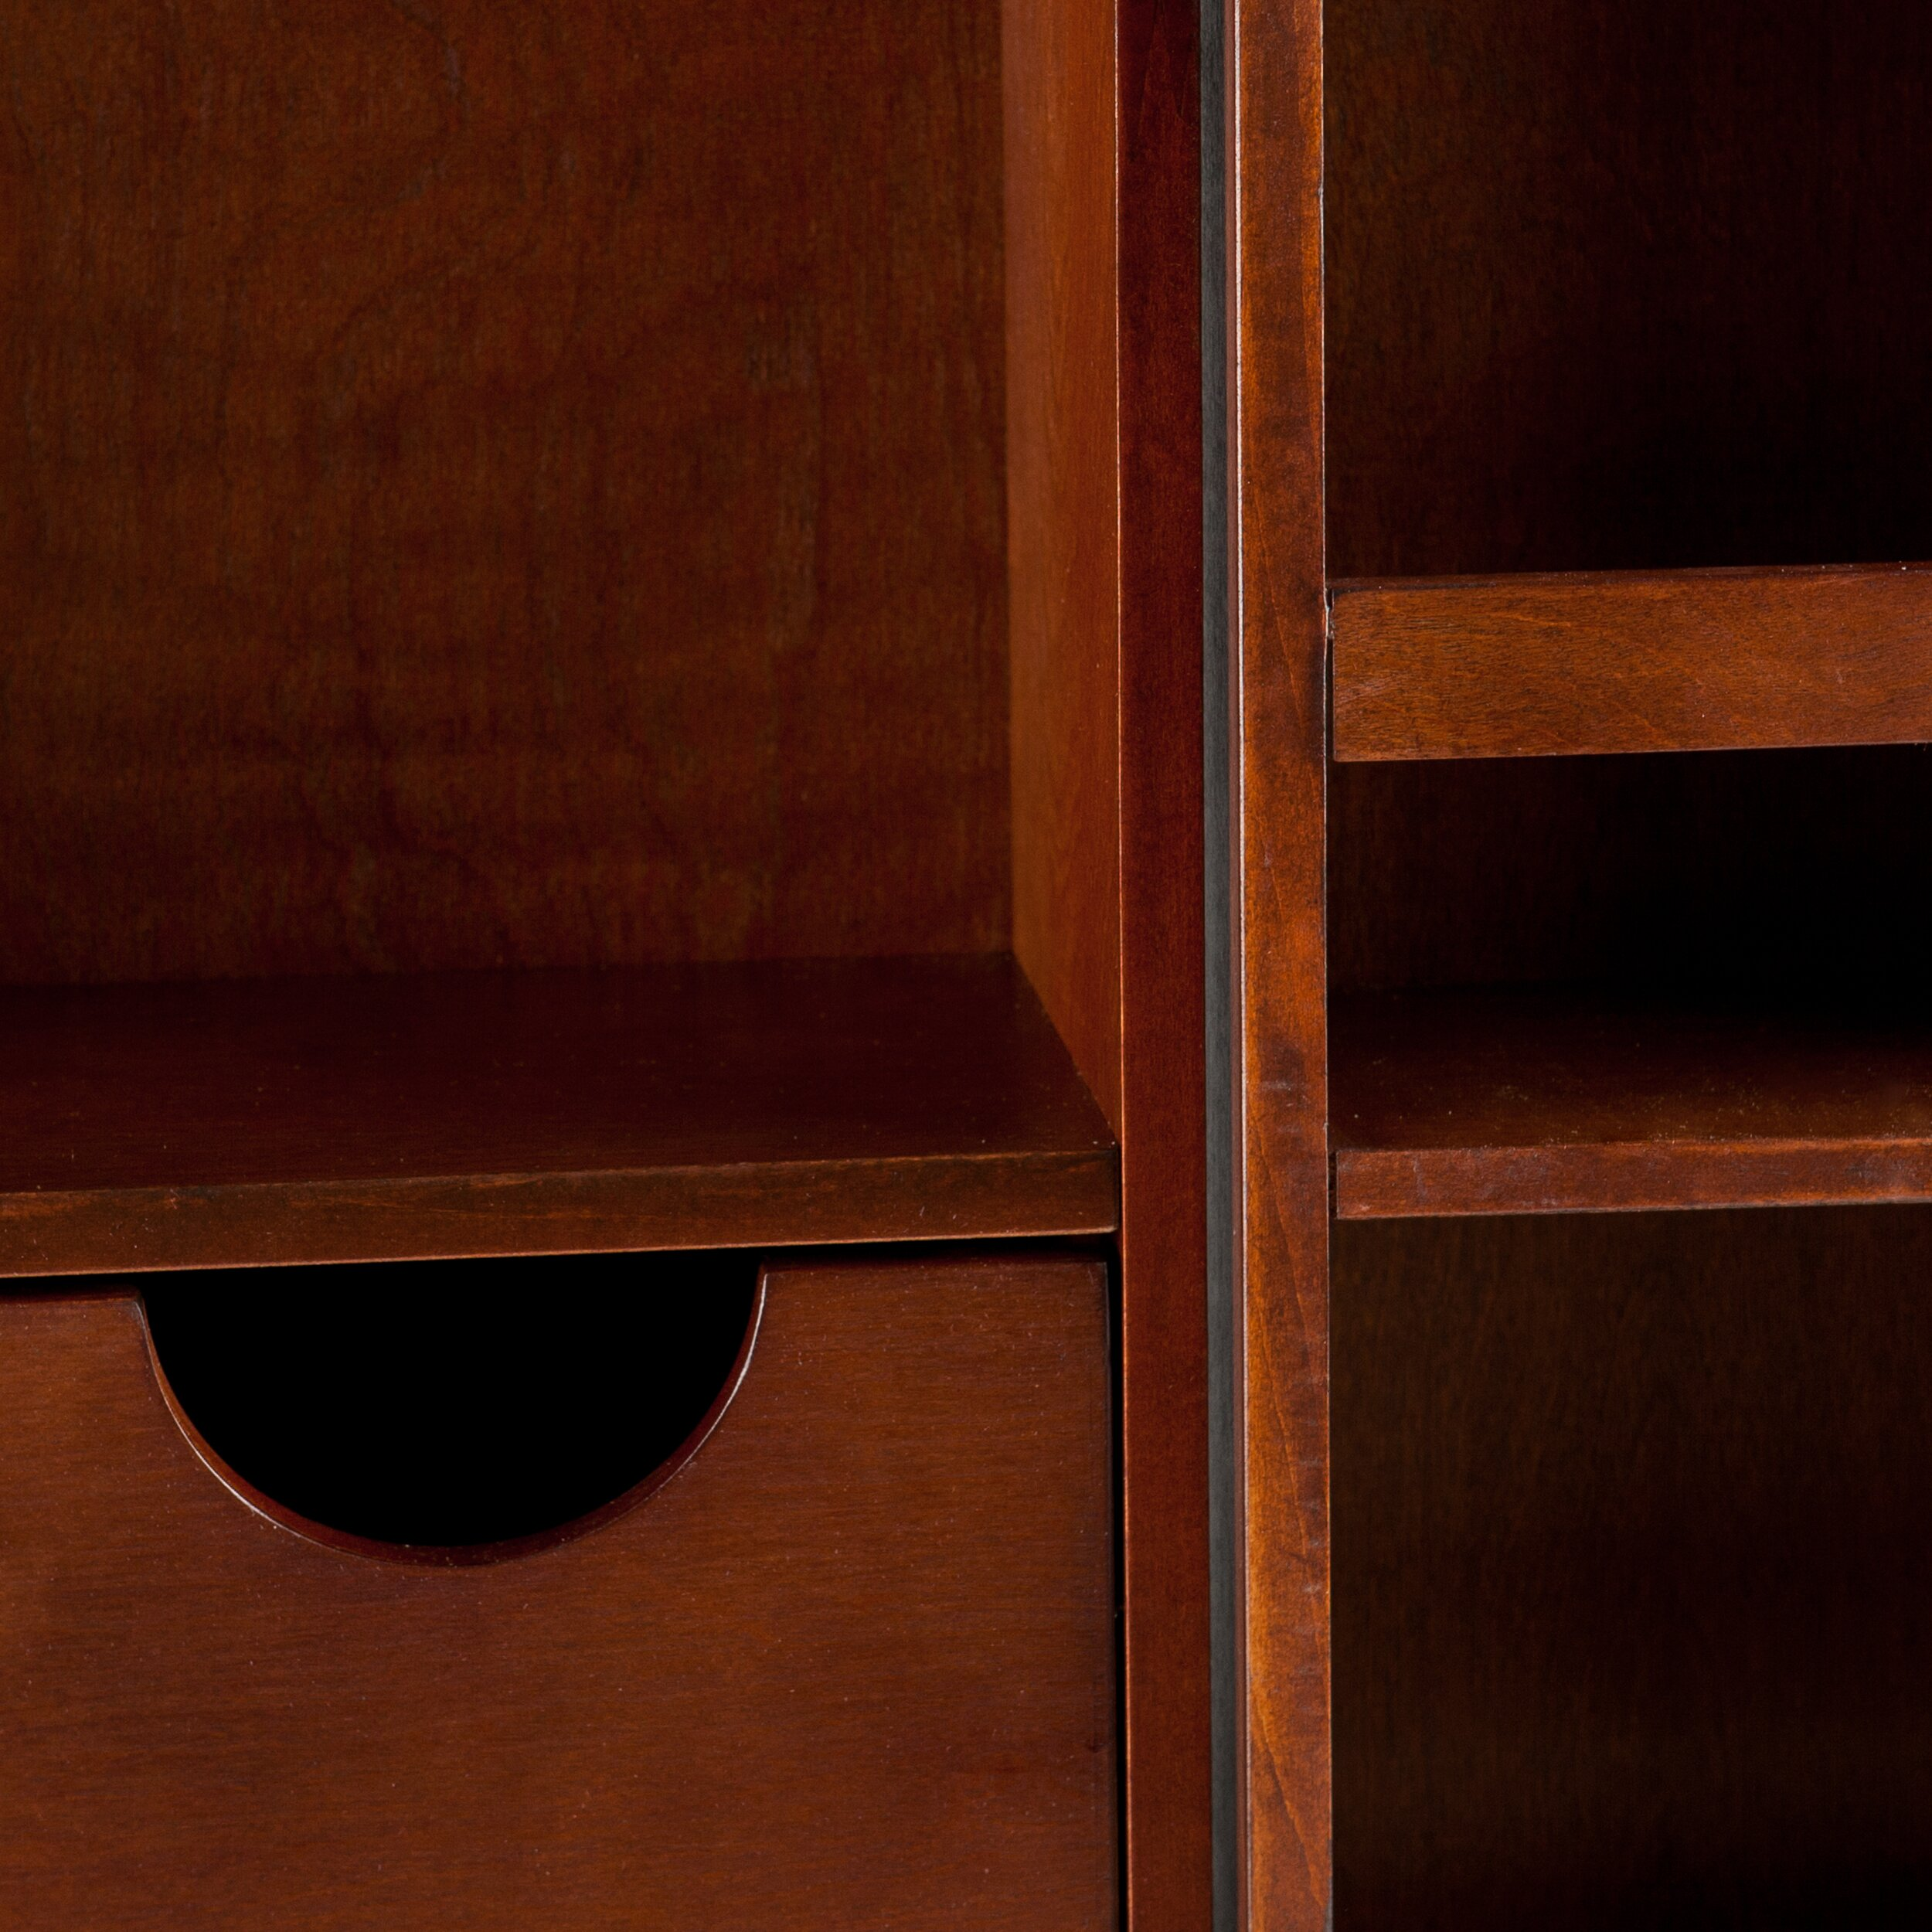 wildon home r boswell bar cabinet with wine storage reviews